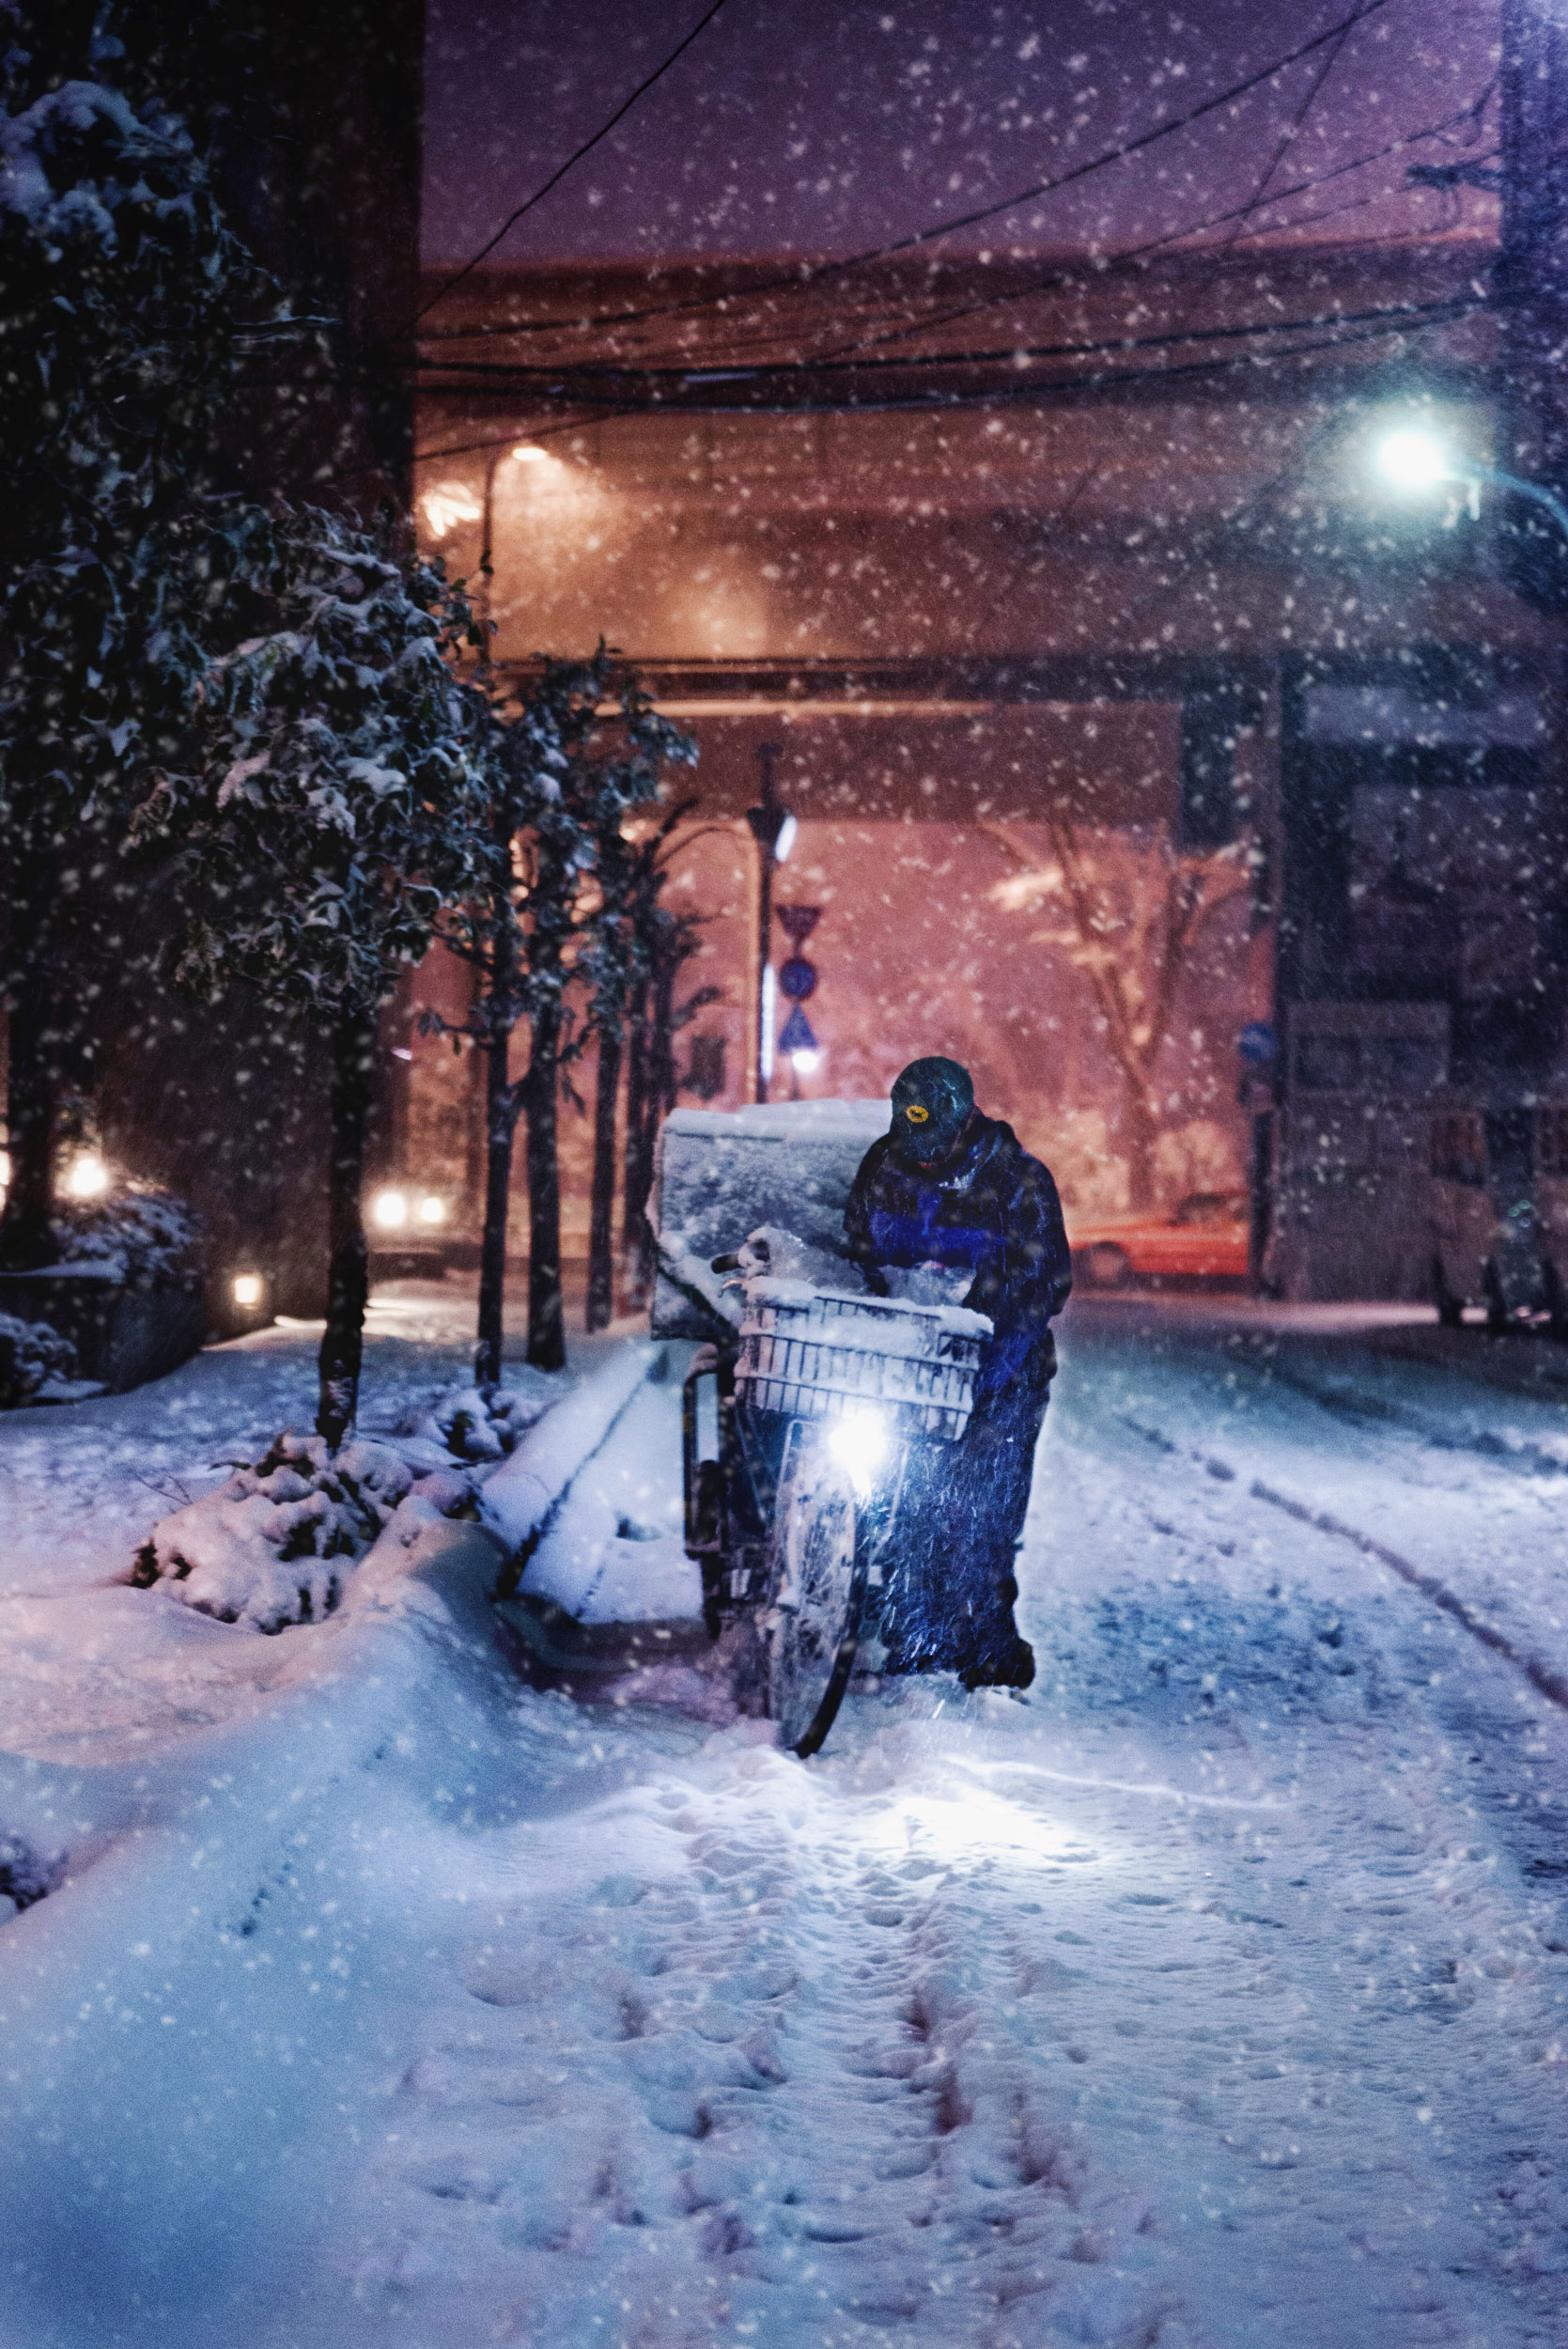 A Kuroneko Yamato delivery man delivering packages on a bicycle in the thick snow in Setagaya.